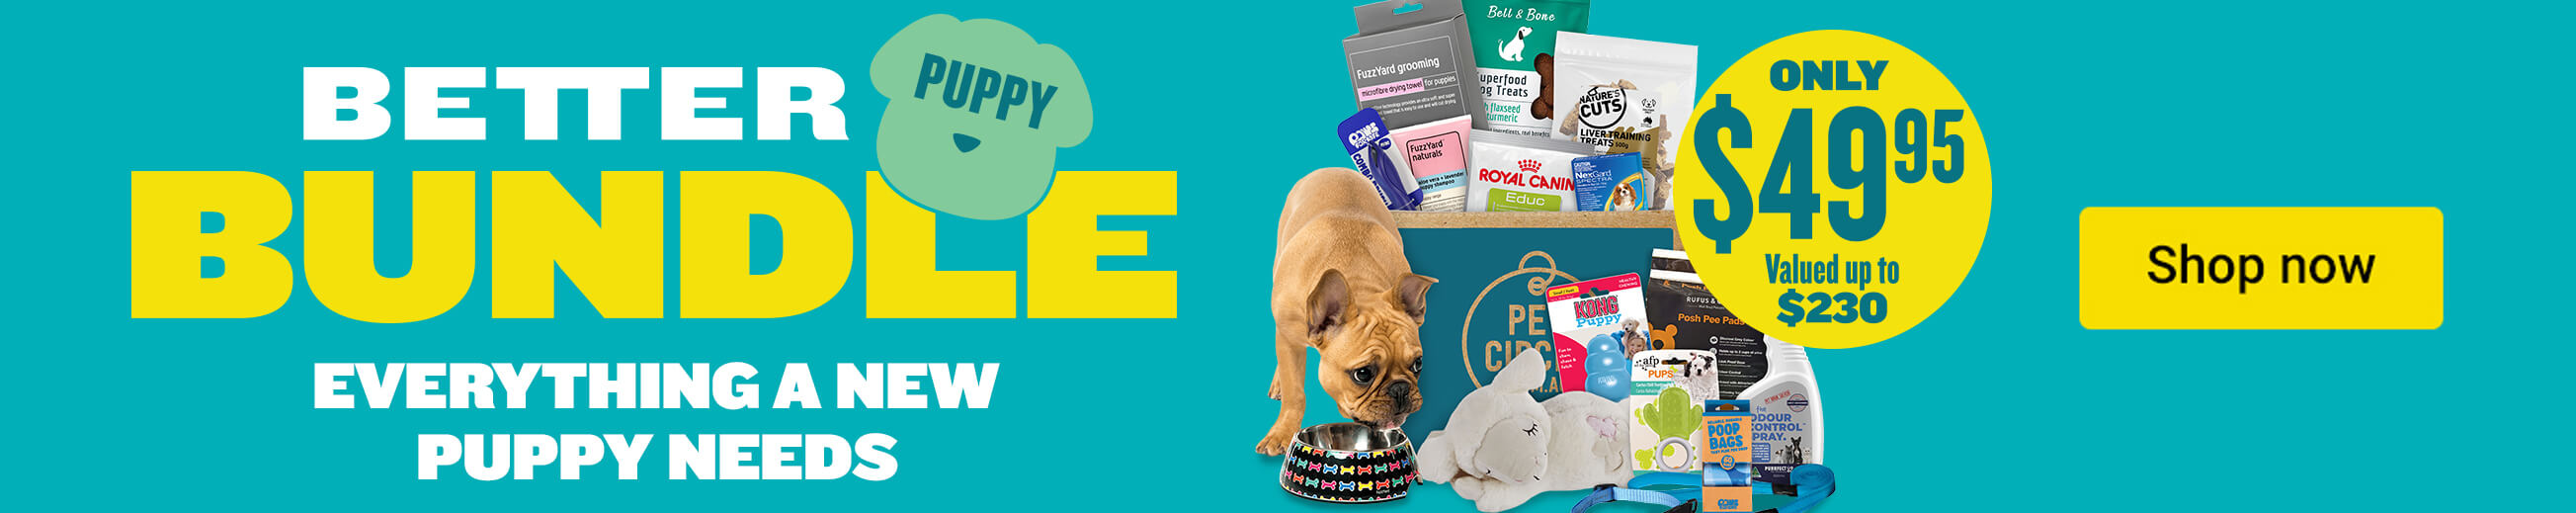 Better Bundle - Everything a new puppy needs. Only $49.95 (valued up to $230)